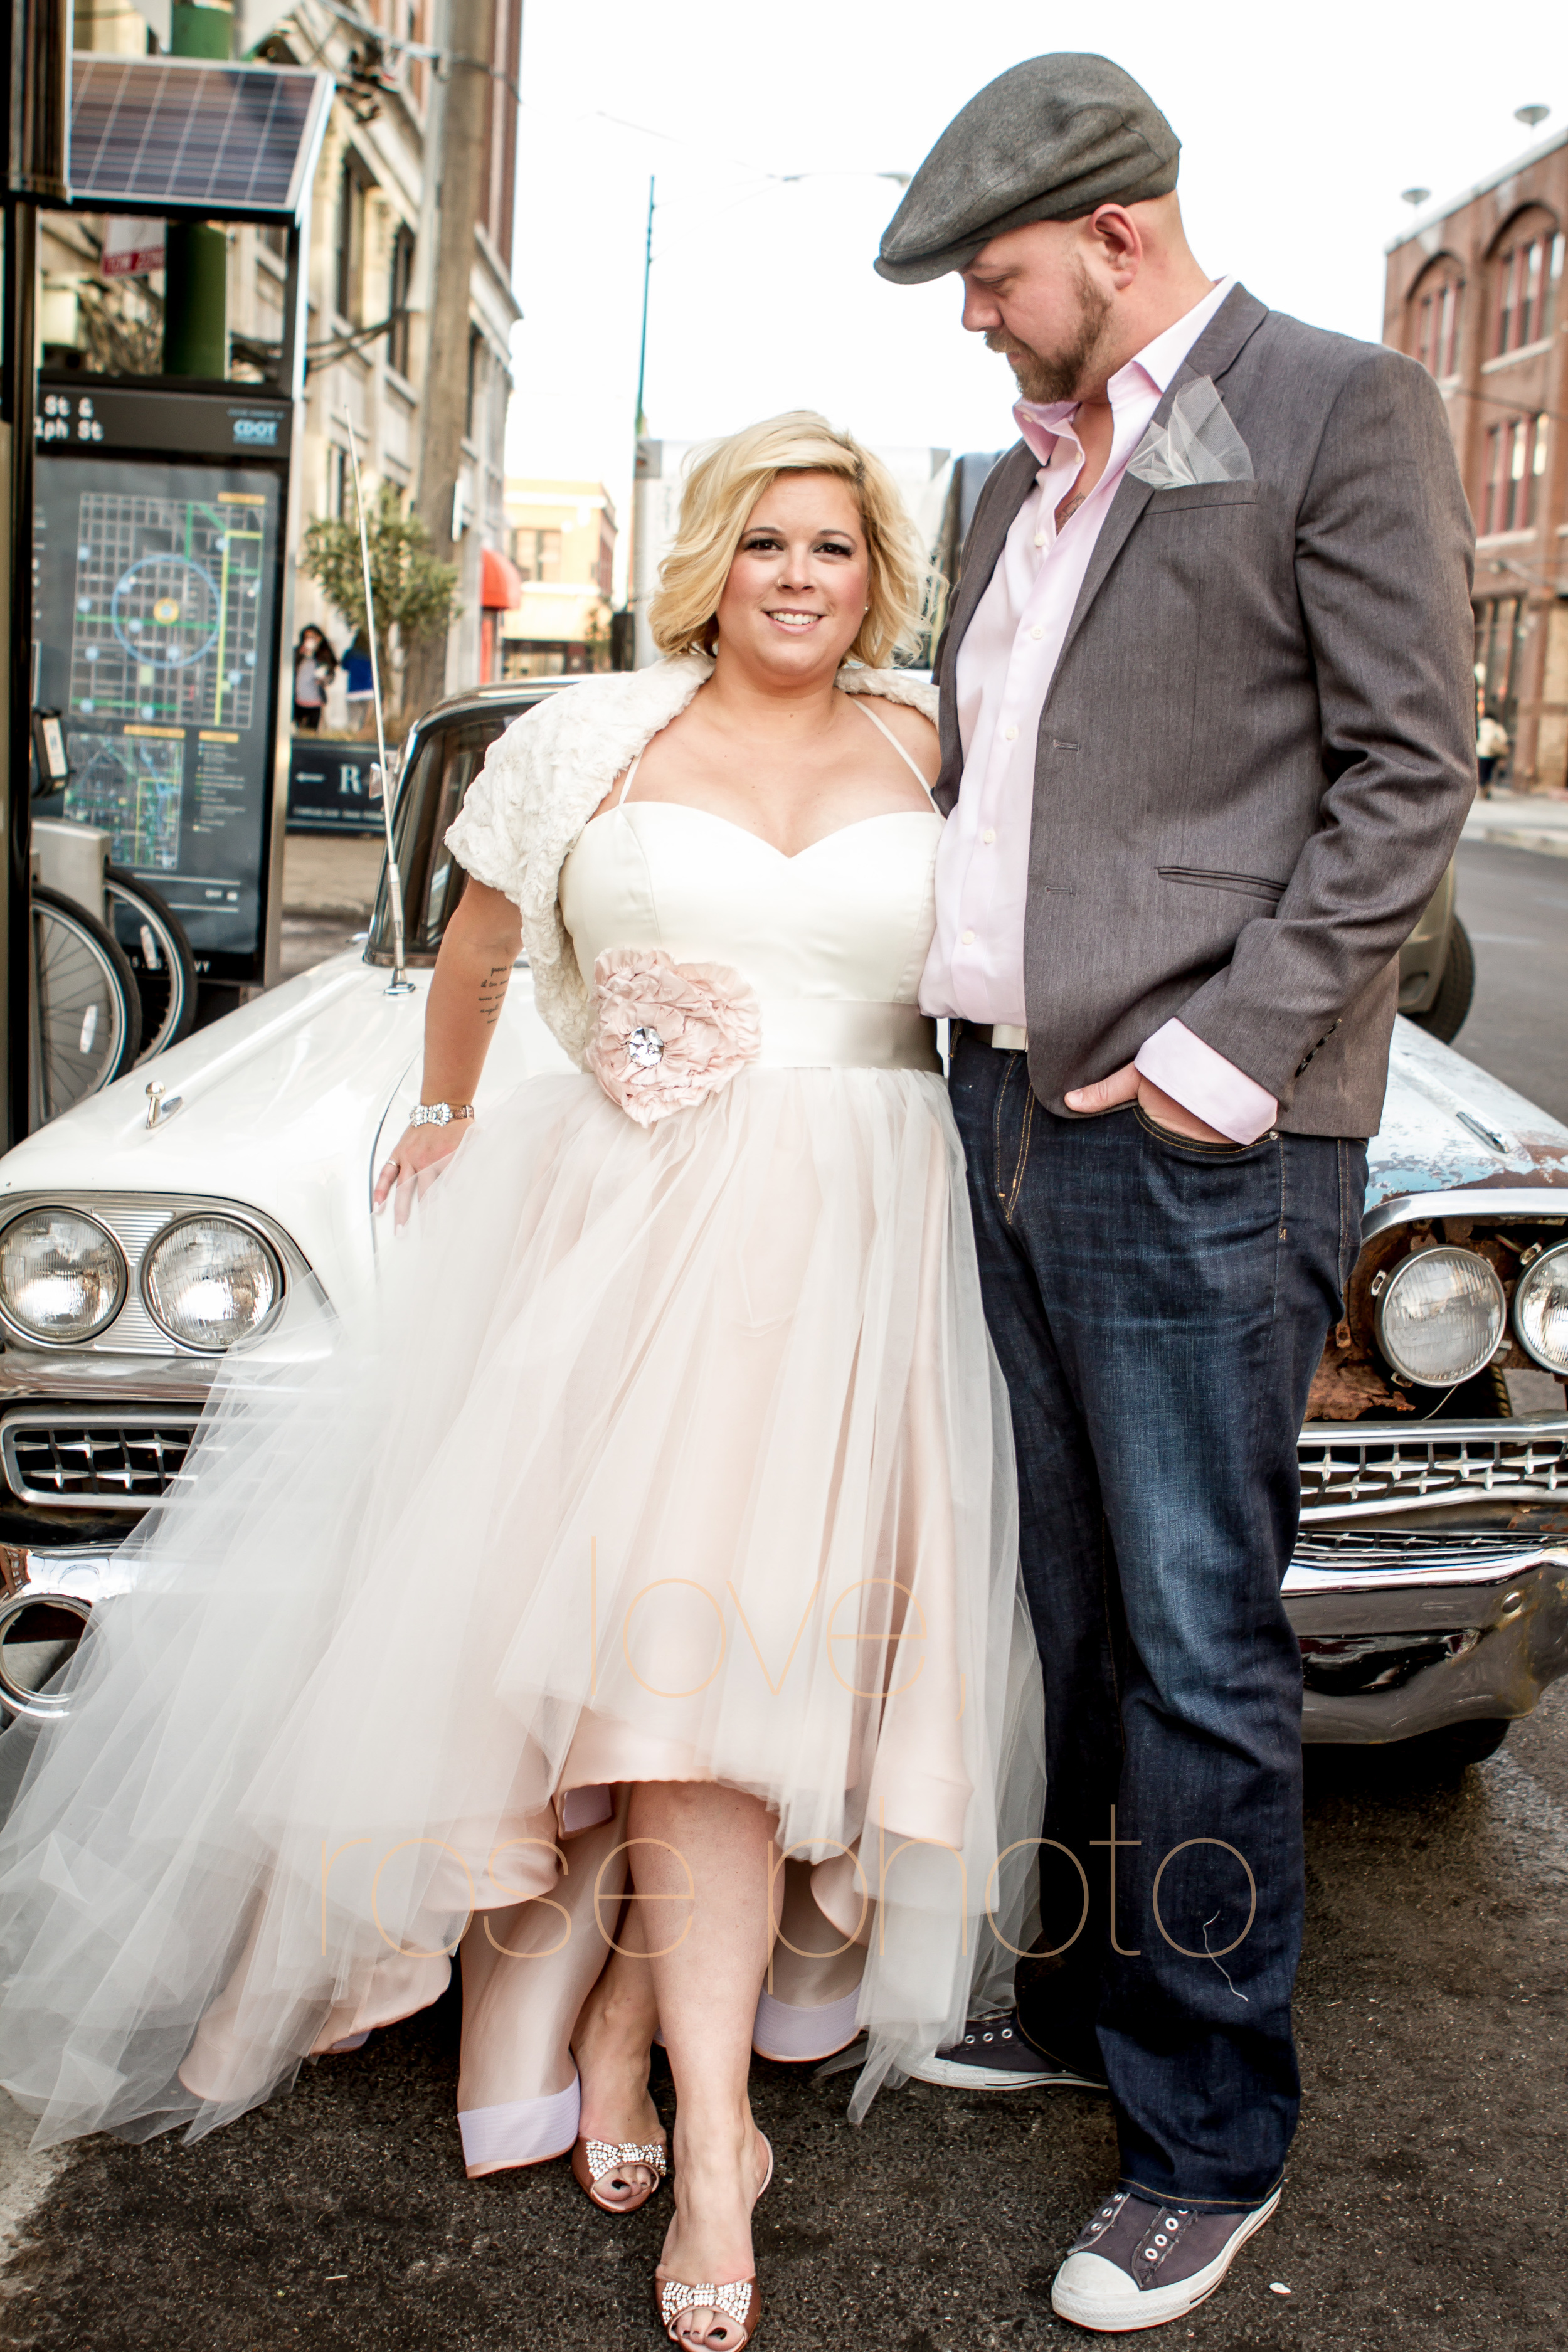 nikki + mike west loop vintage classic throwback pinup rock and roll tattoo photoshoot engagement wedding photo shoot-010.jpg